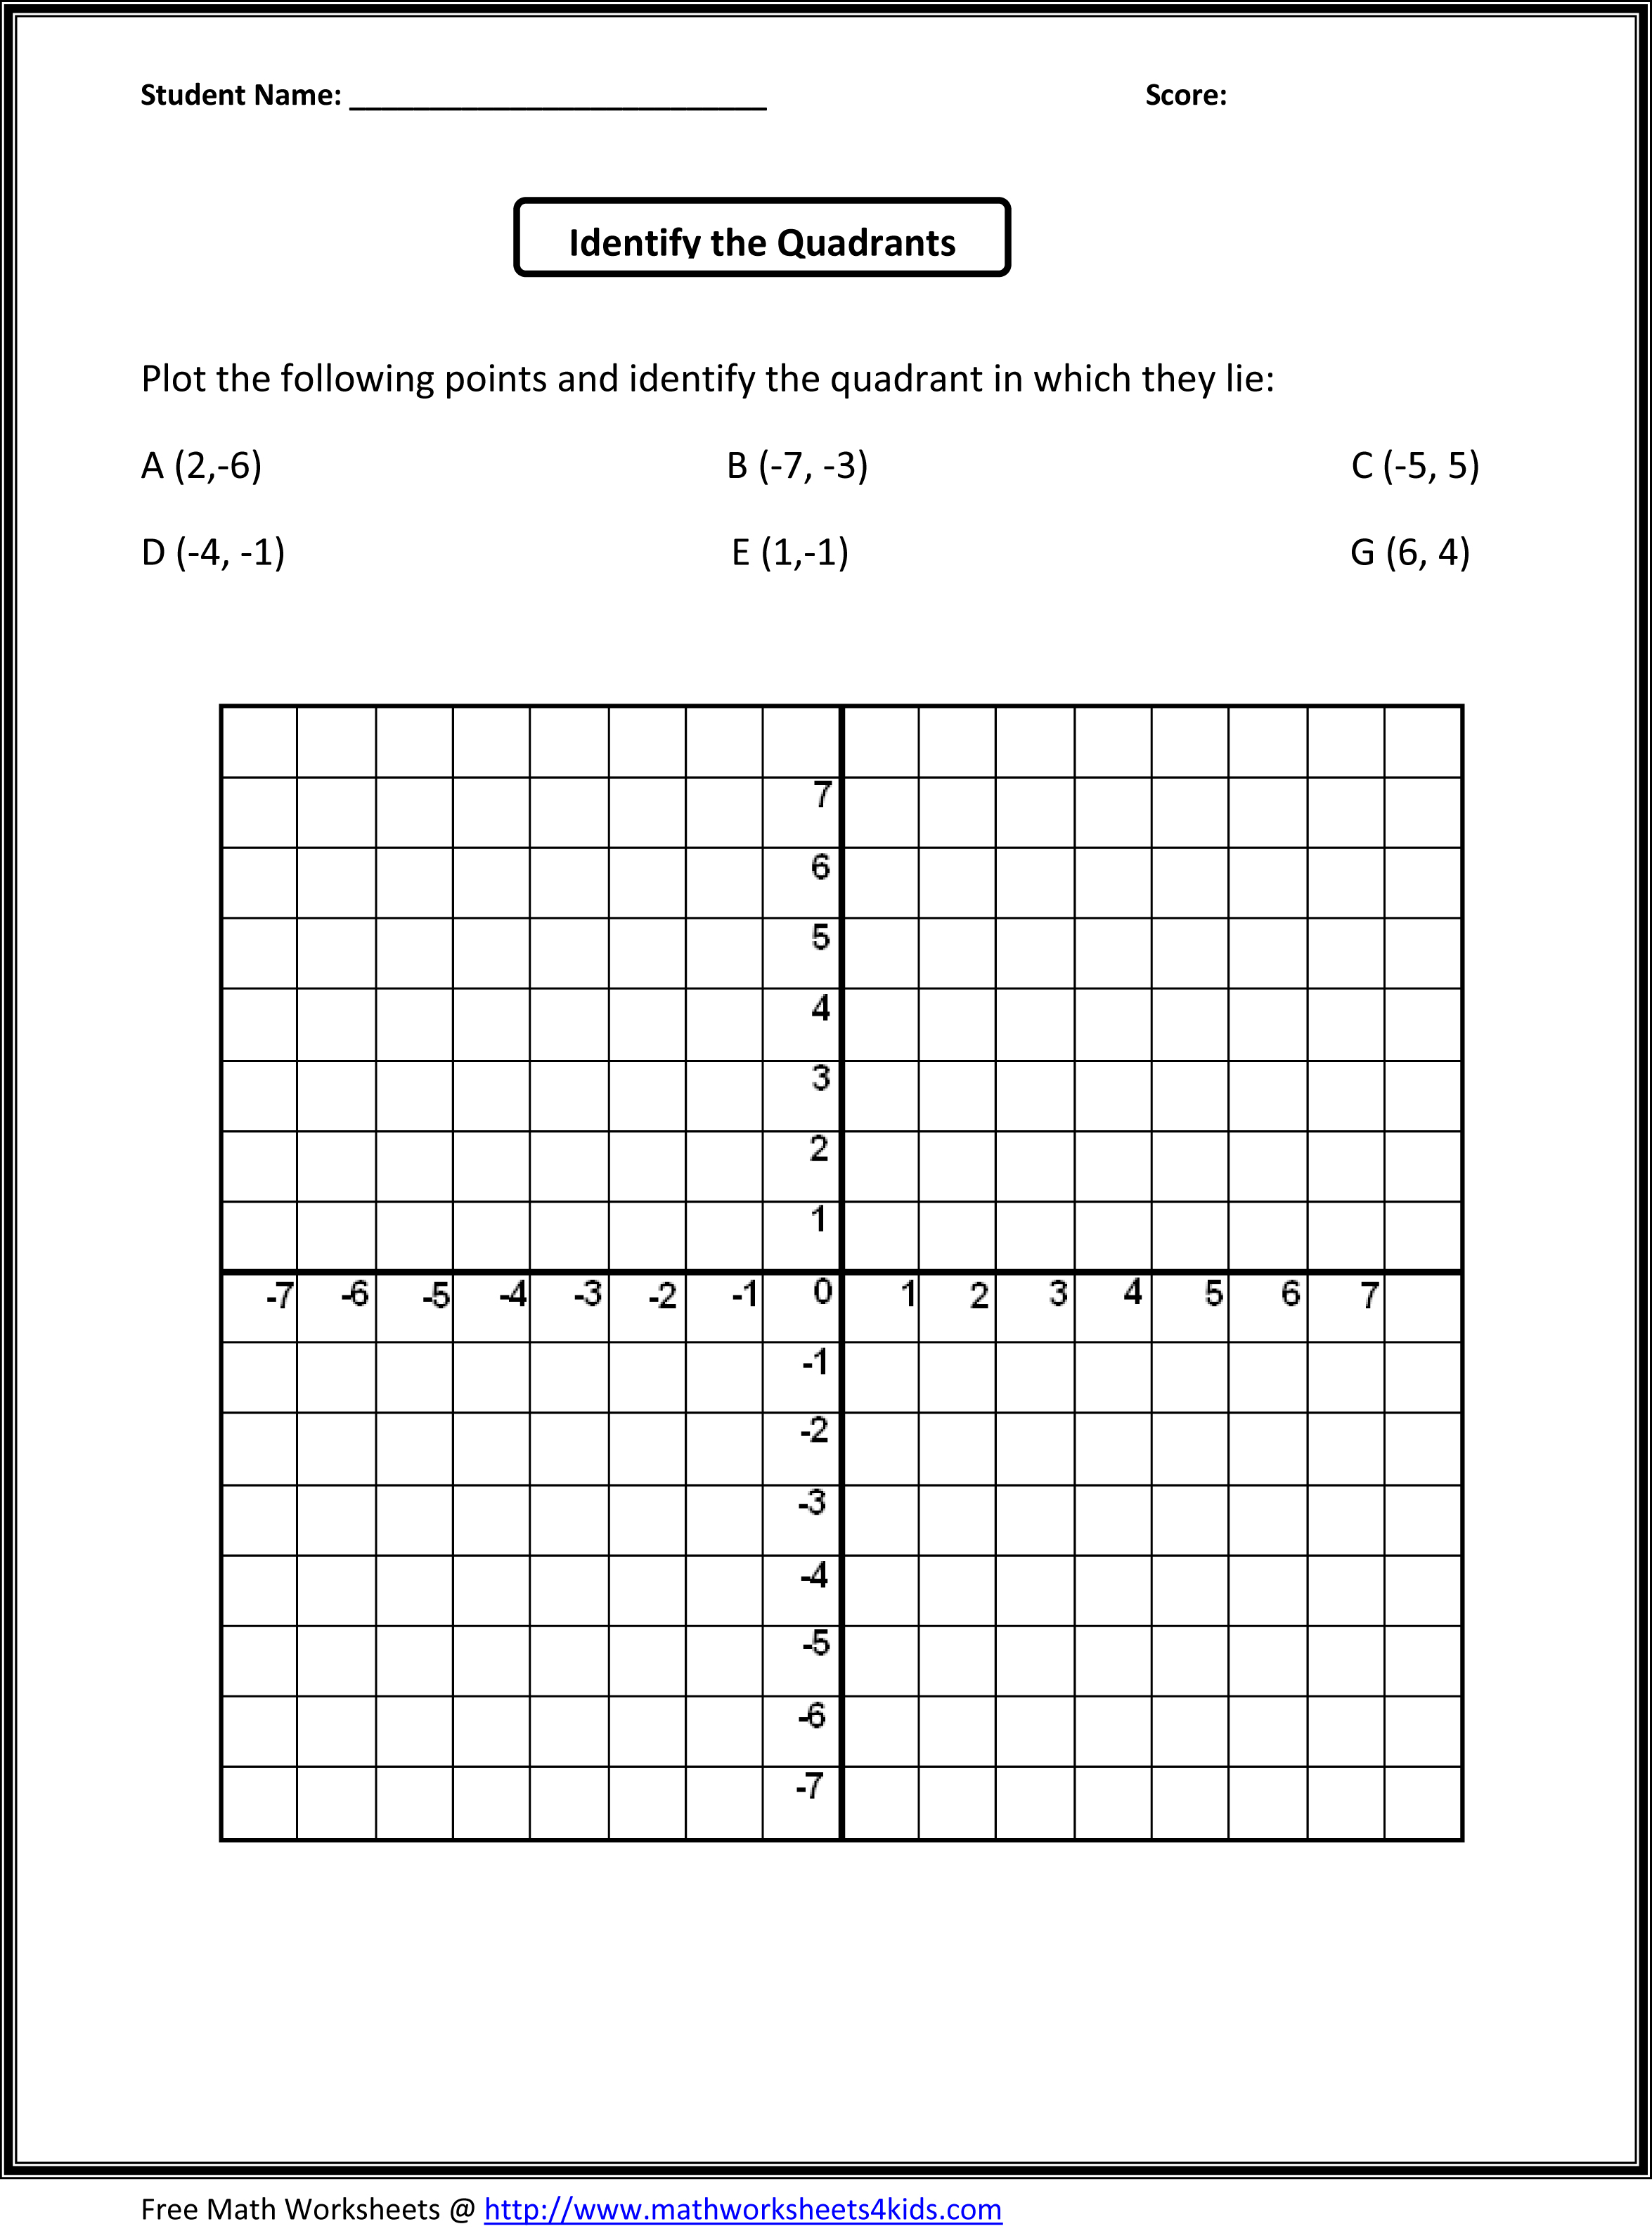 Uncategorized Fifth Grade Math Worksheets Free hard math problems for 5th graders coursework help graders